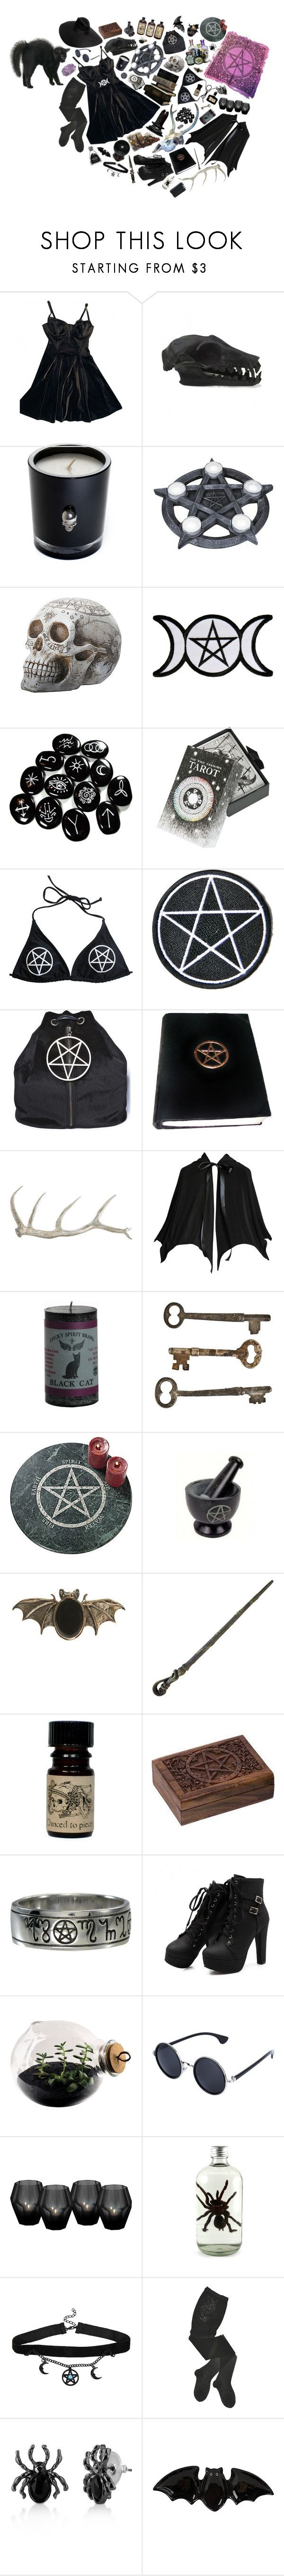 """""""witchcraft"""" by peachcarnage ❤ liked on Polyvore featuring American Apparel, Lisa Carrier, The Wild Unknown, Hollywood Mirror, Dolly Bae, Arteriors, Jayson Home, Maria Nilsdotter, Lolita Lempicka and Pieces"""